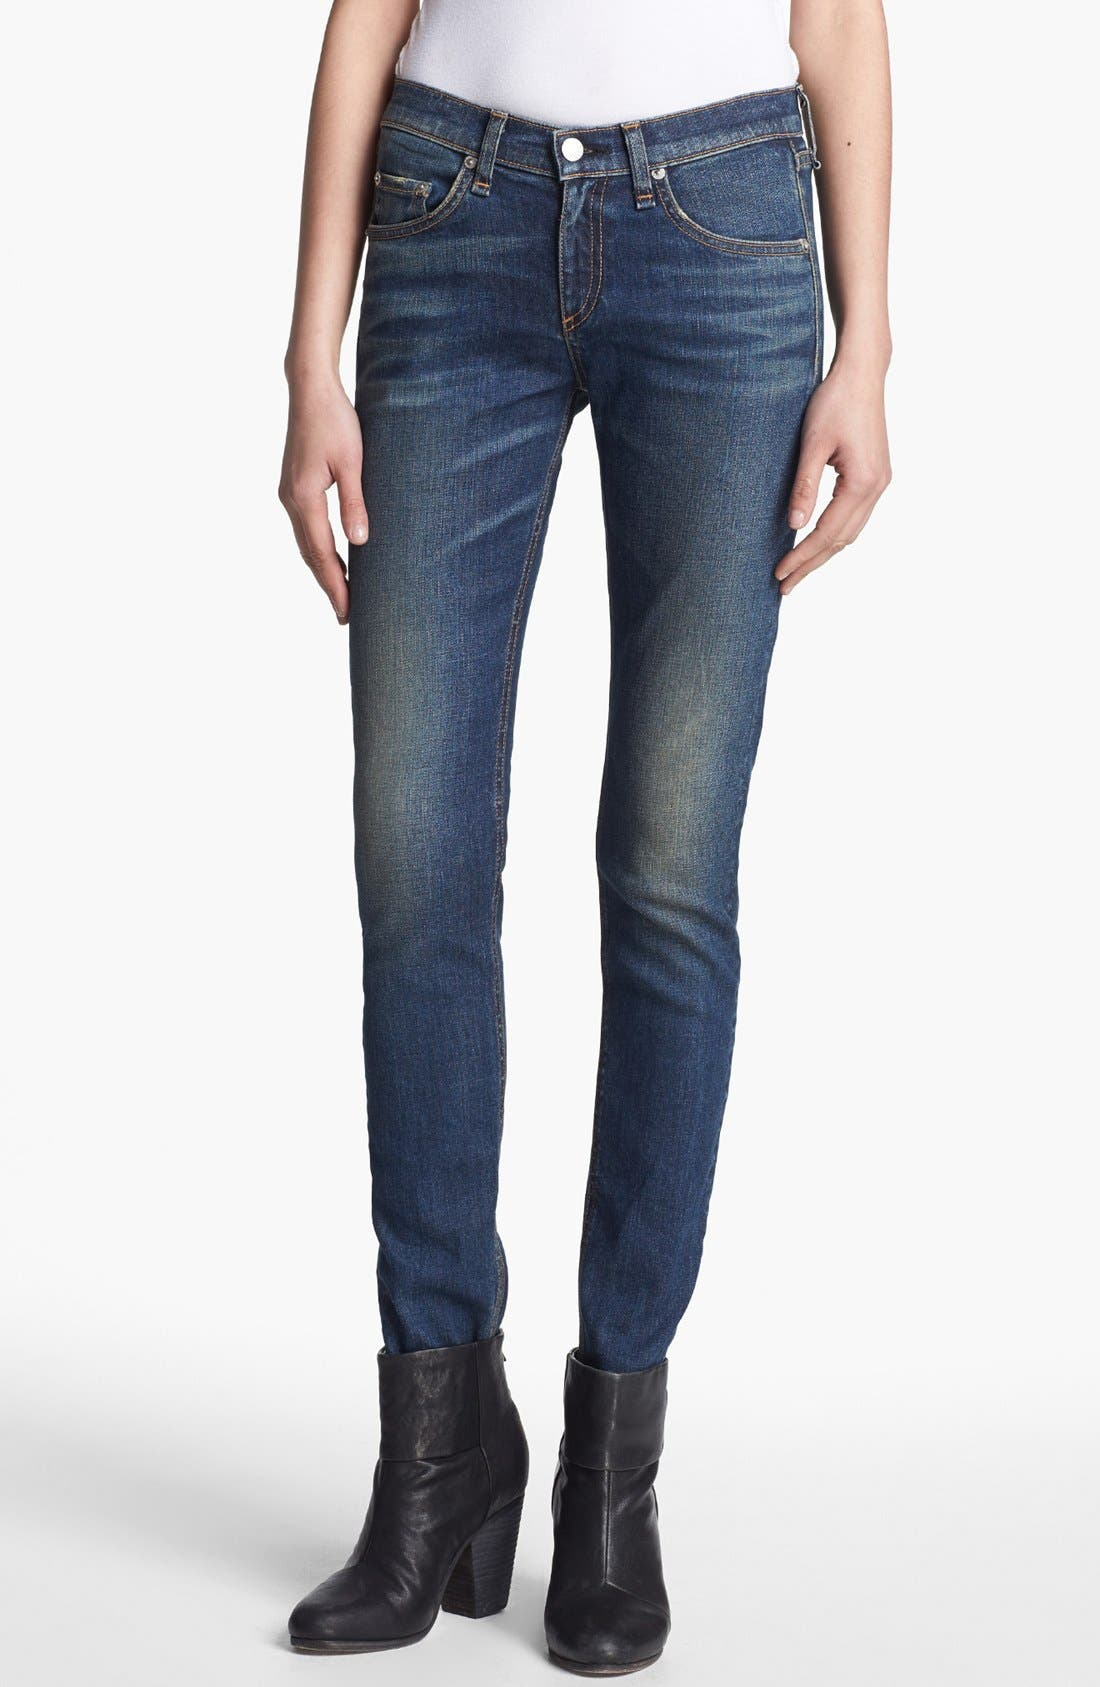 Alternate Image 1 Selected - rag & bone/JEAN Skinny Stretch Jeans (Stratham)